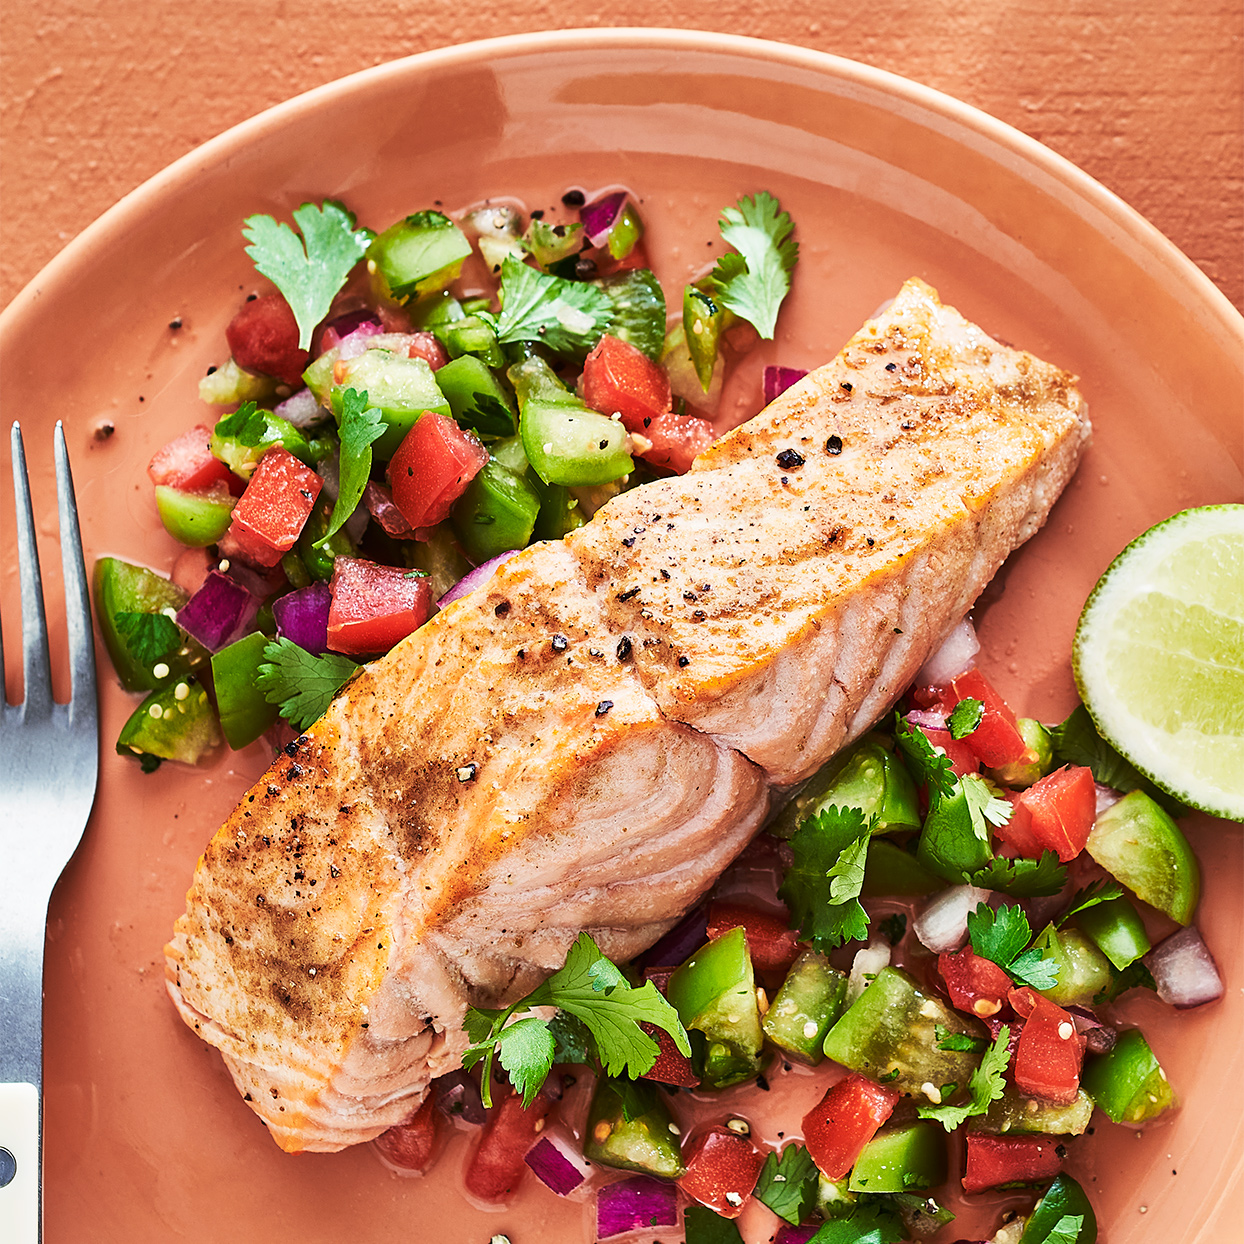 We made this chopped salad with pico de gallo in mind. Tangy tomatillos add fresh crunch to the classic mixture of tomatoes, cilantro and onion to brighten up this broiled salmon recipe.